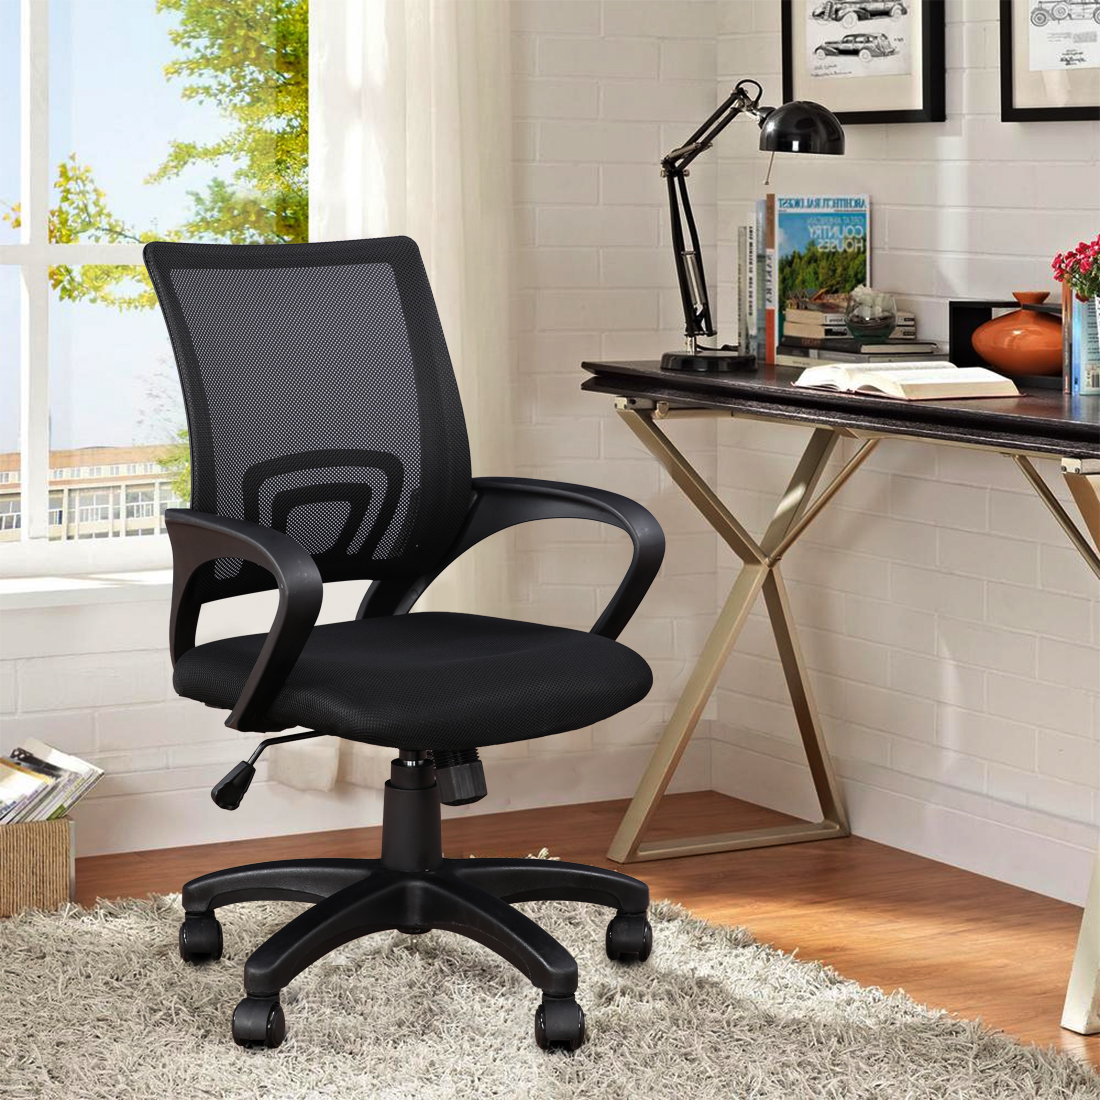 Regus Fabric Office Chair in Black Colour by HomeTown